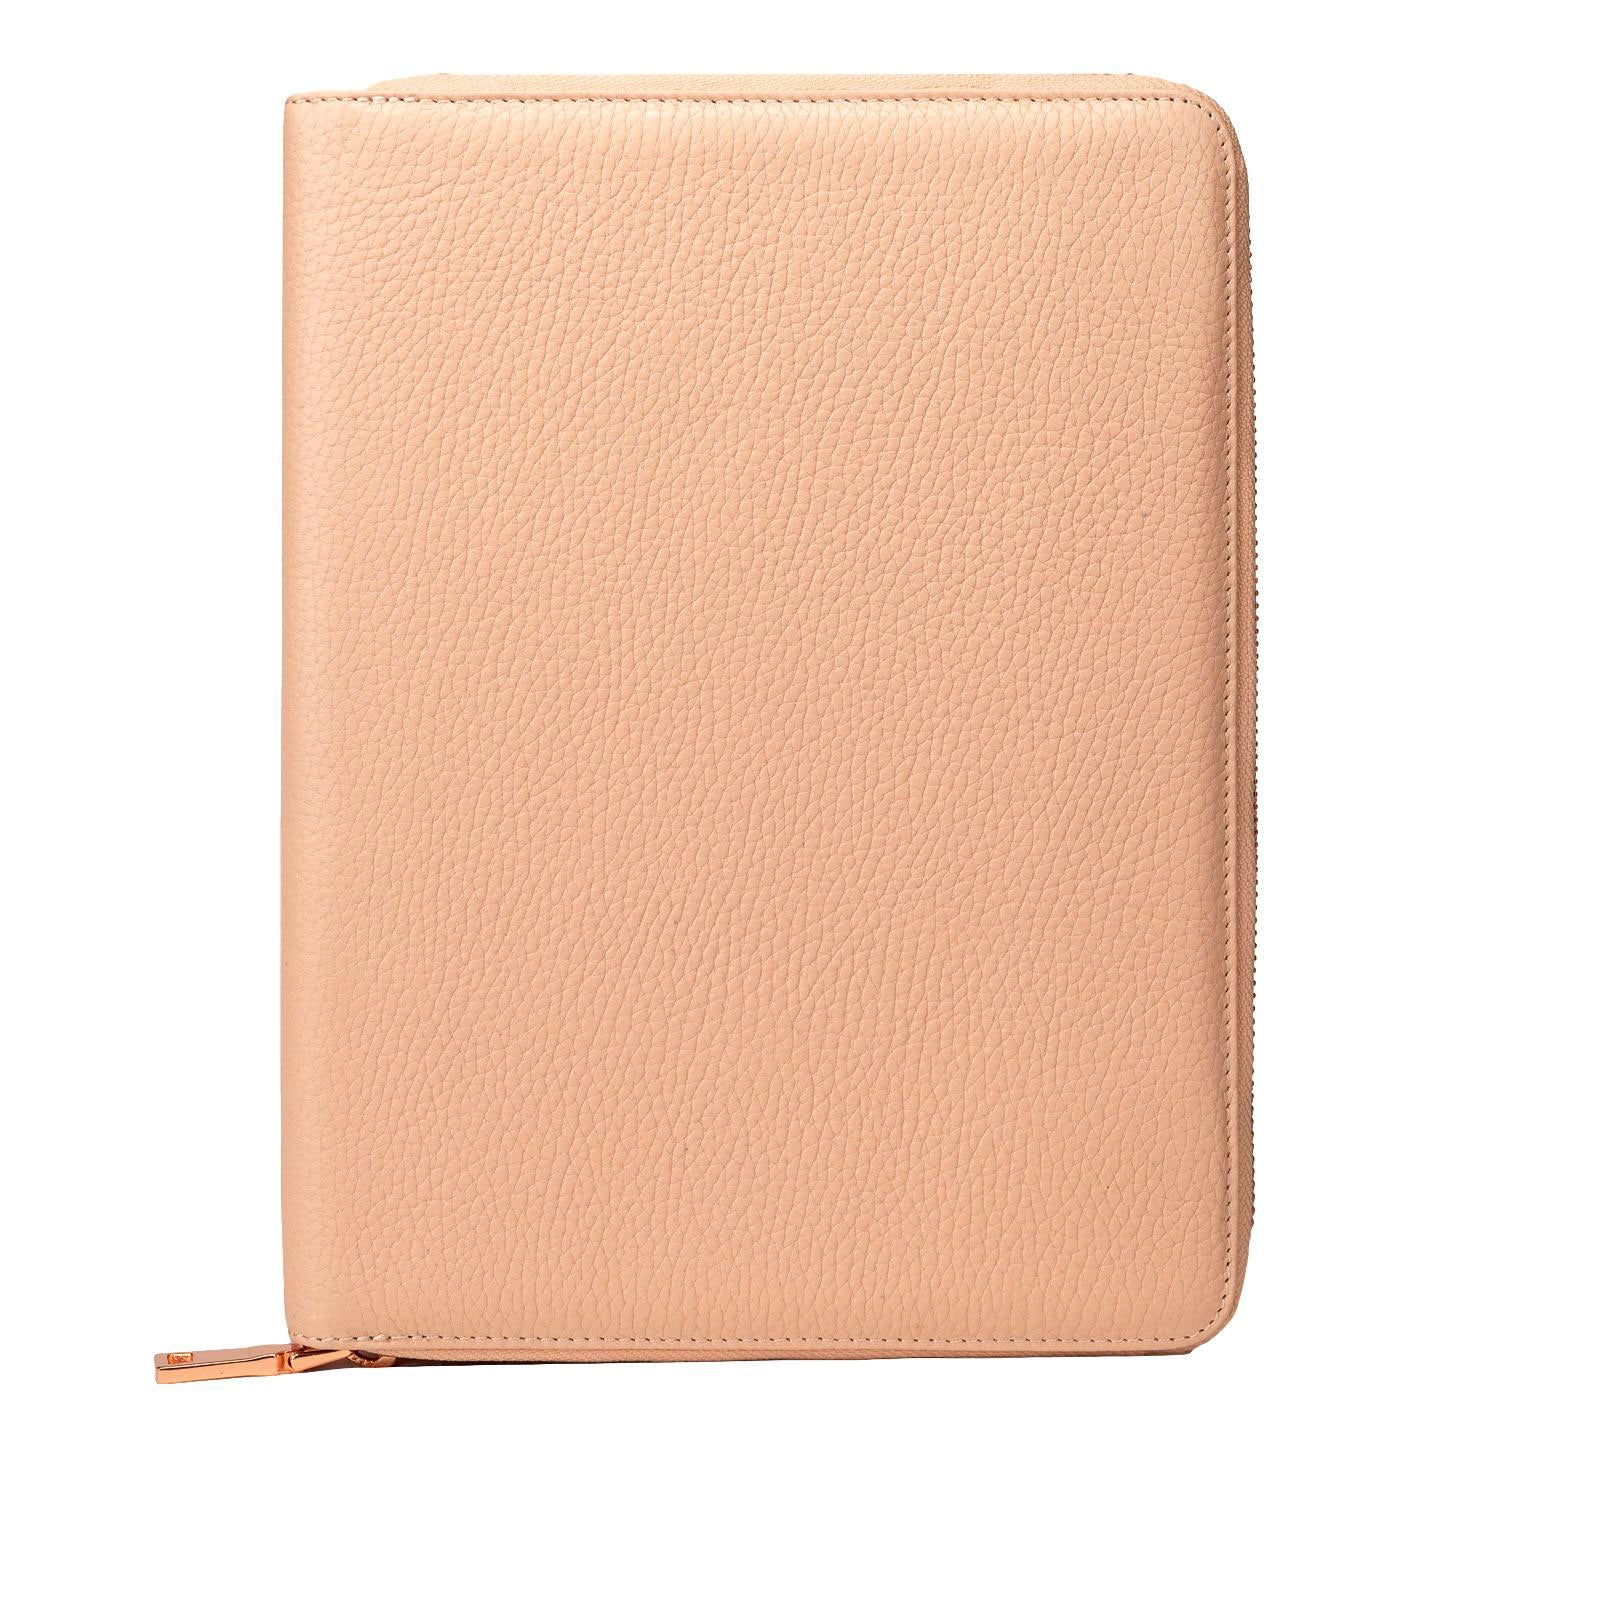 Mon Purse Pebbled iPad Air Zip Case in Blush